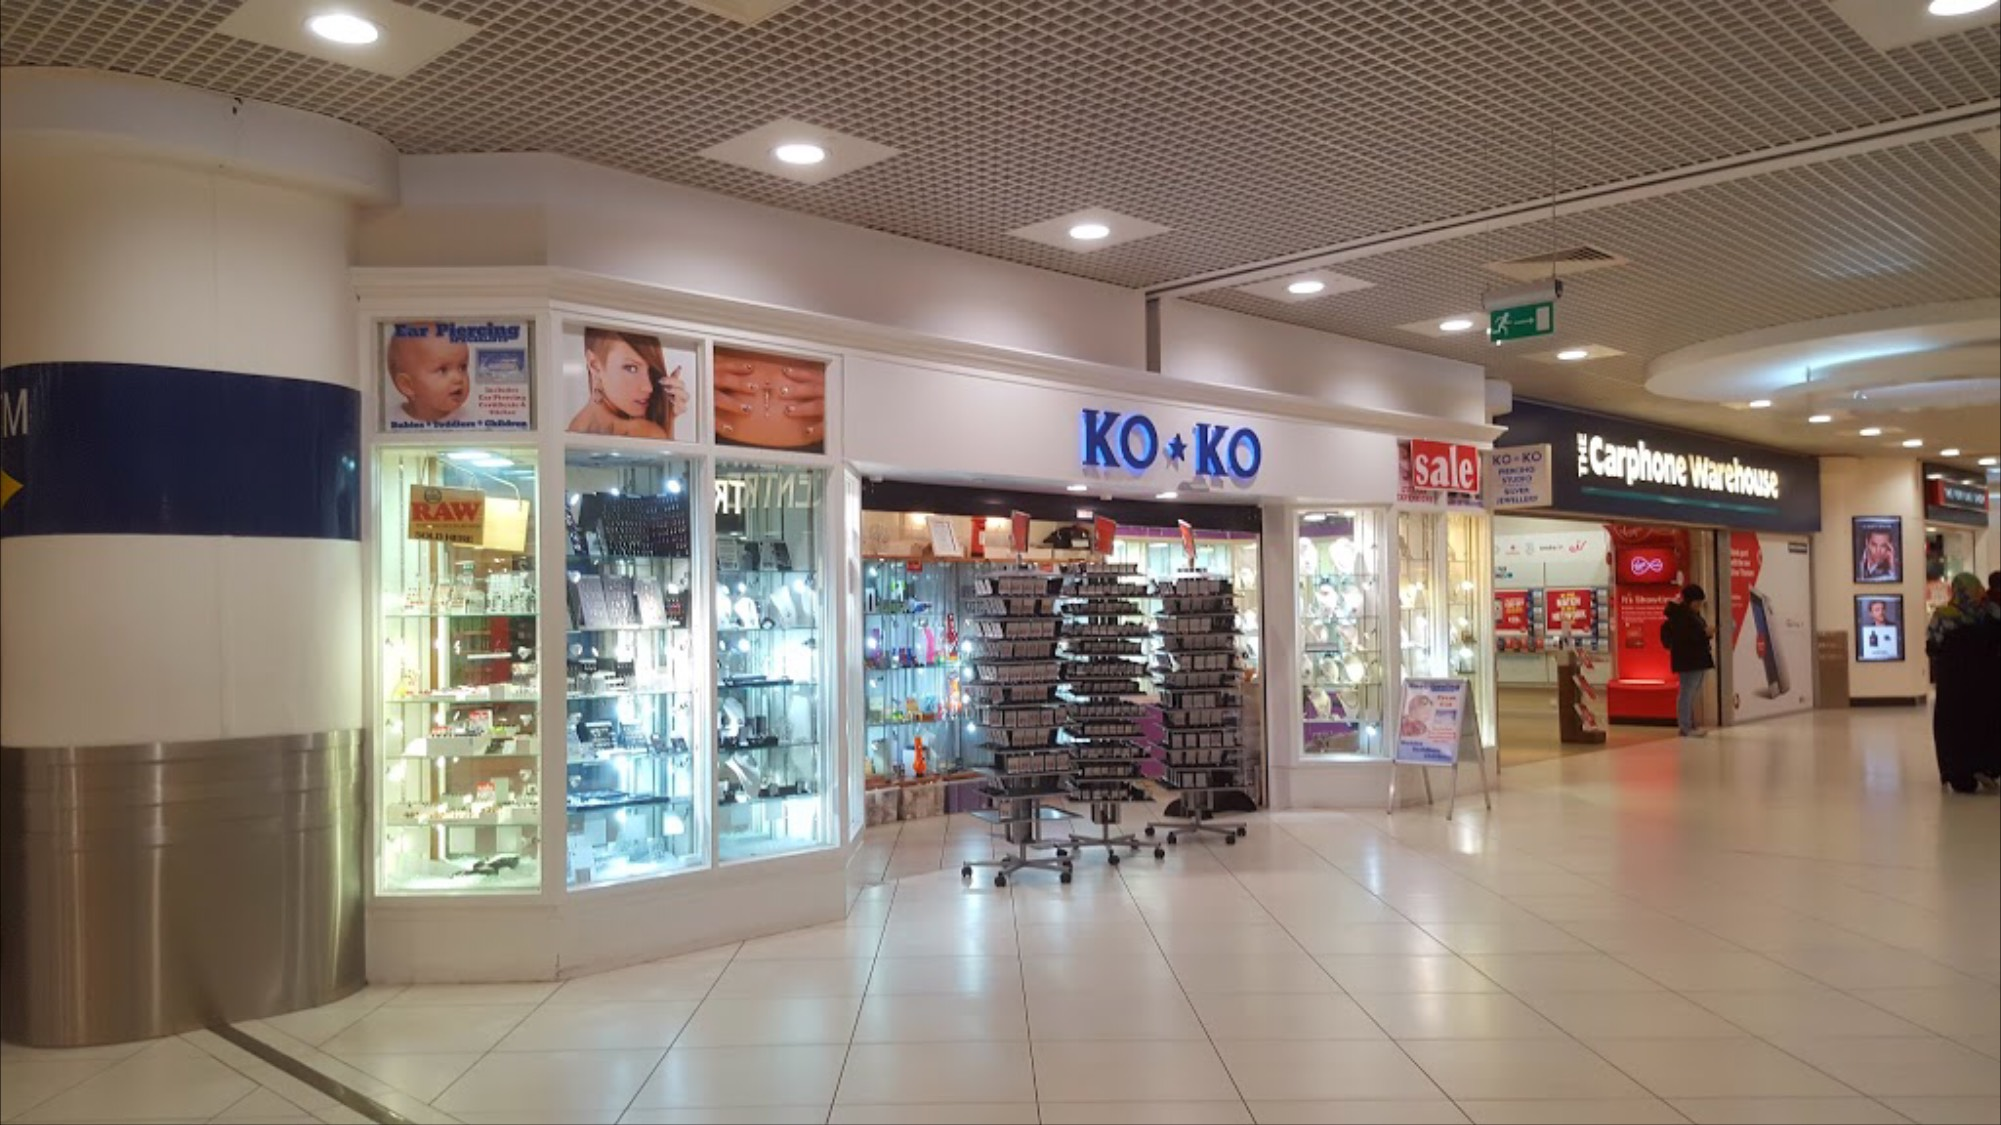 KOKO  - We are professional Body Piercing, Ear & Nose Piercing Studio with a full range of body jewellery and earrings. We are located in The Square Tallaght on level 2.Learn more ➝